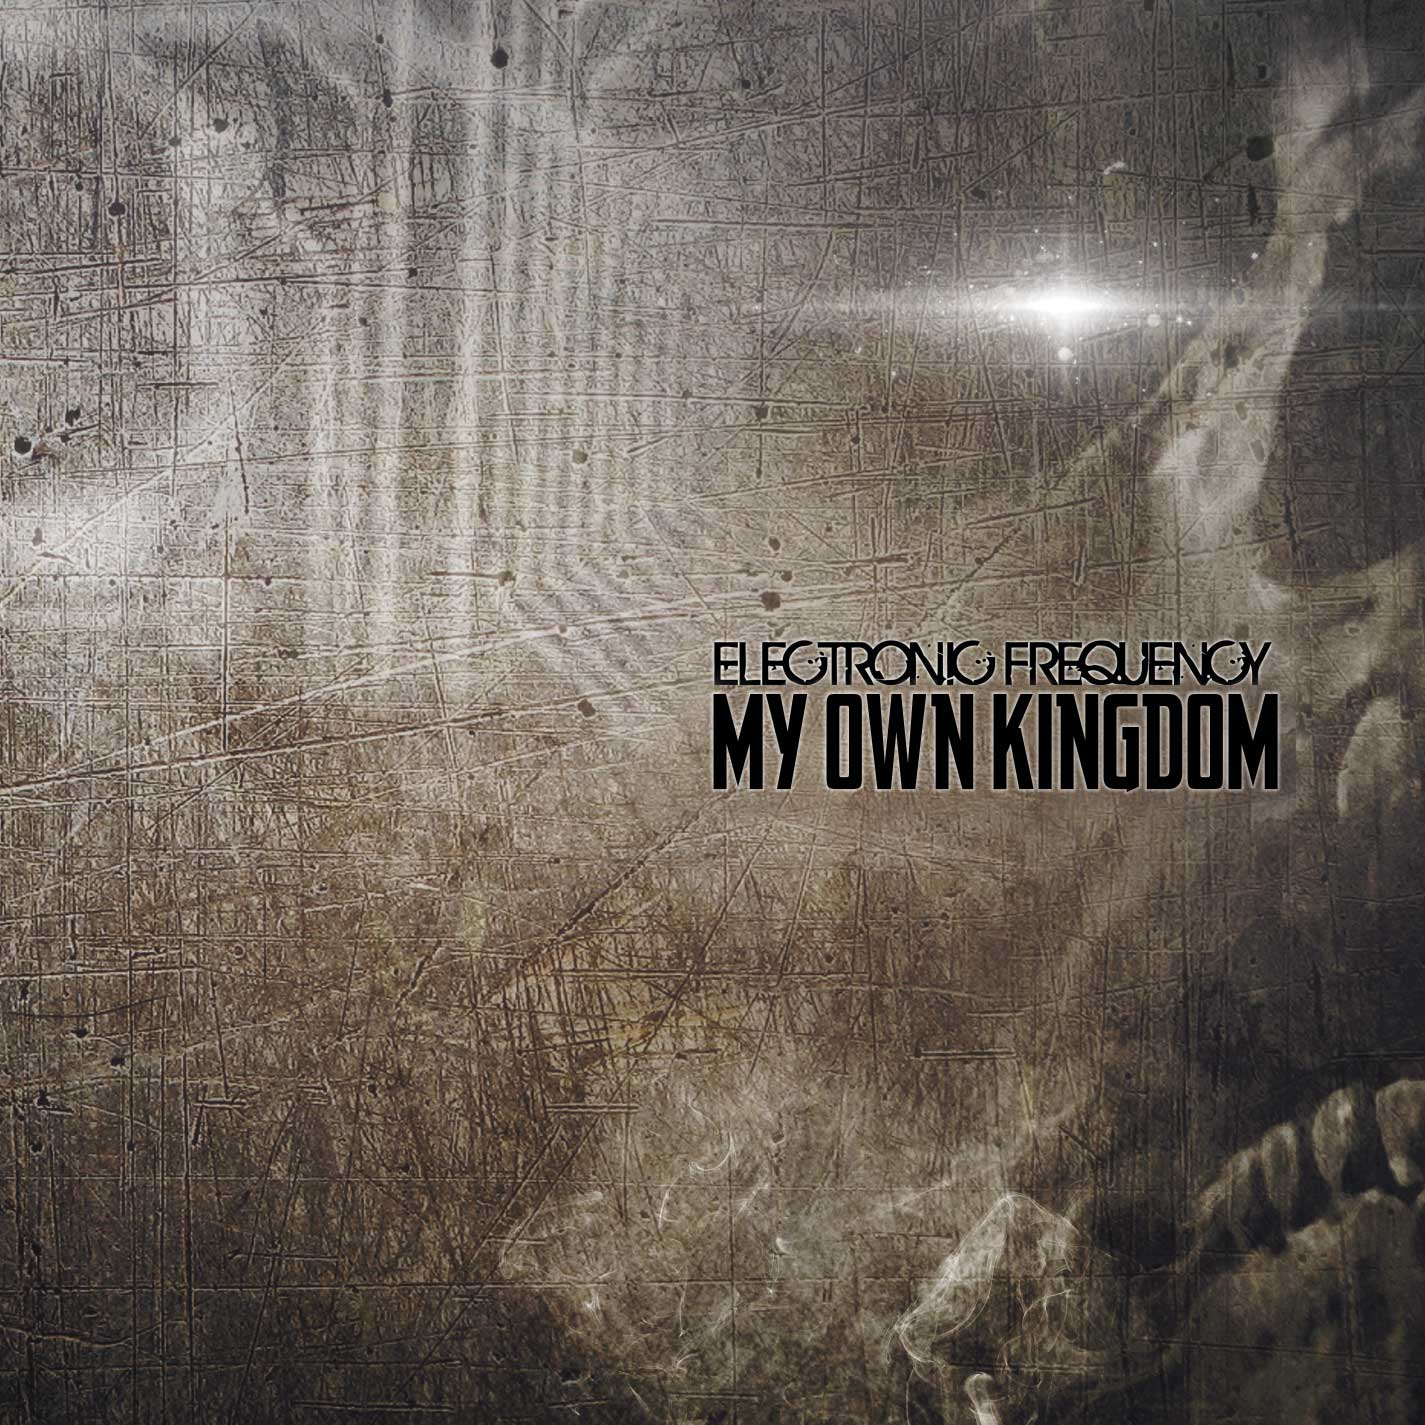 Electronic Frequency - My Own Kingdom - Electronic Frequency - My Own Kingdom